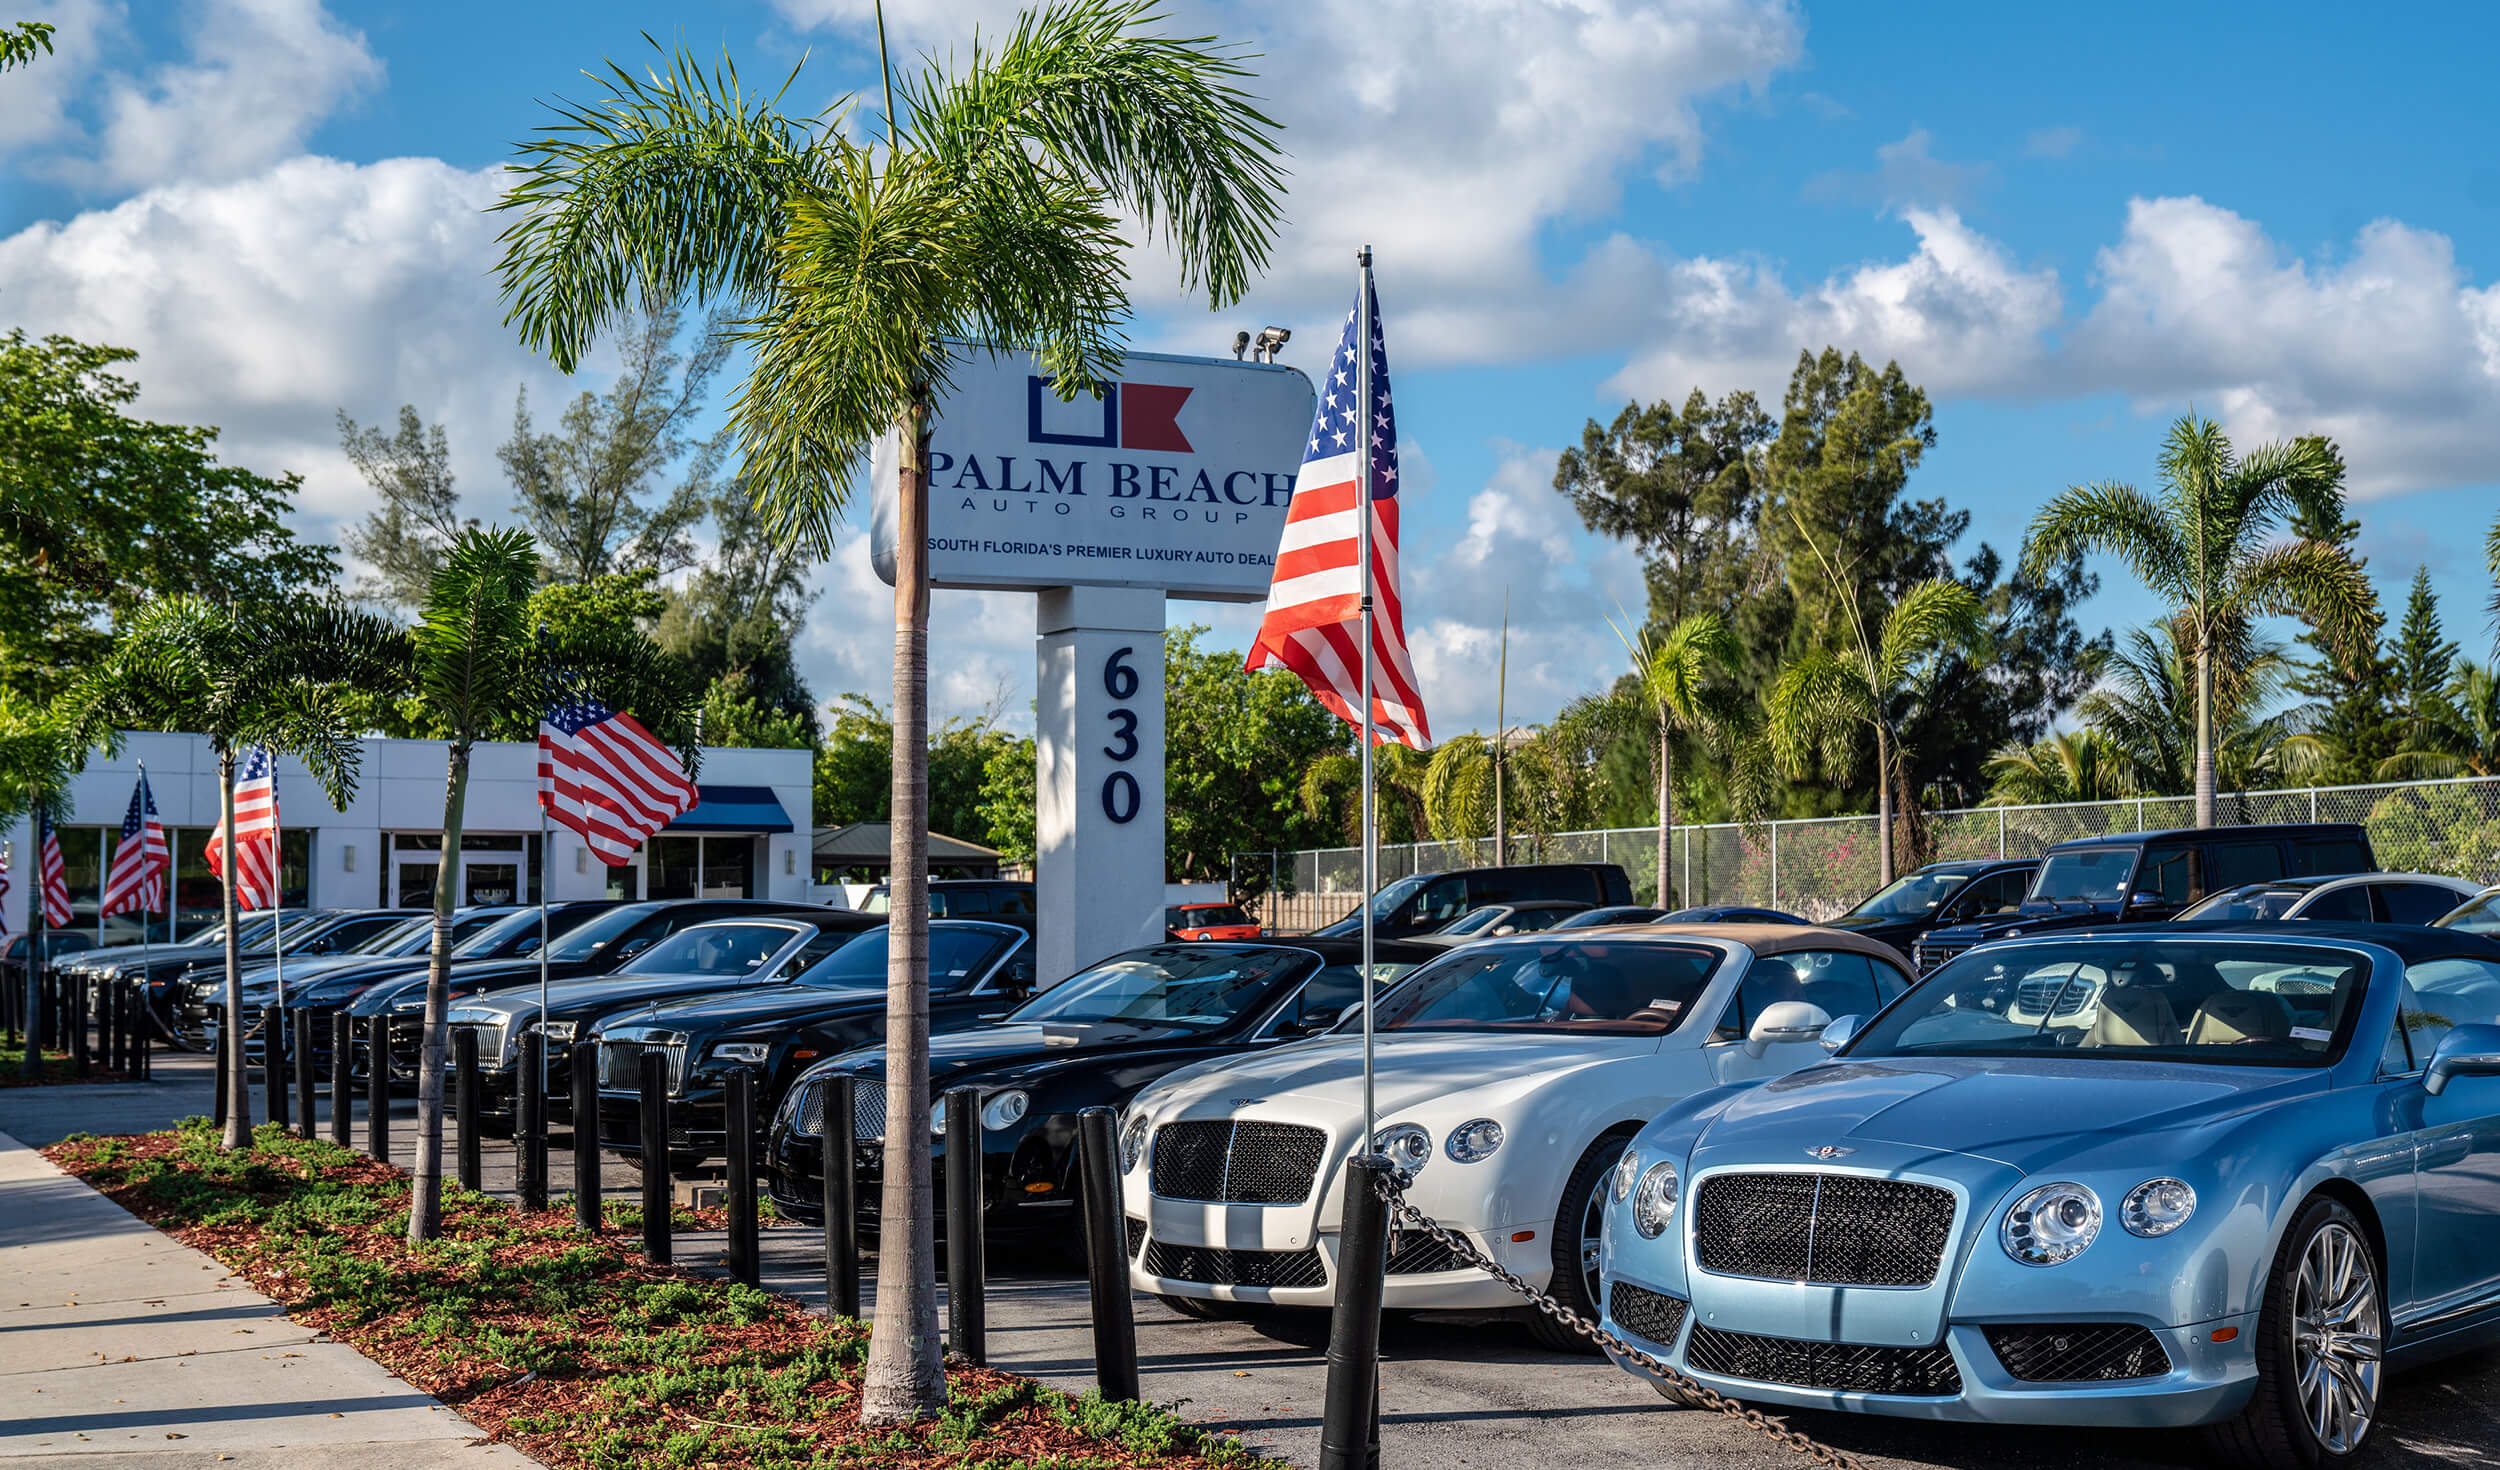 Exterior image of Palm Beach Auto Group dealership: line of cars with flags & palm trees.